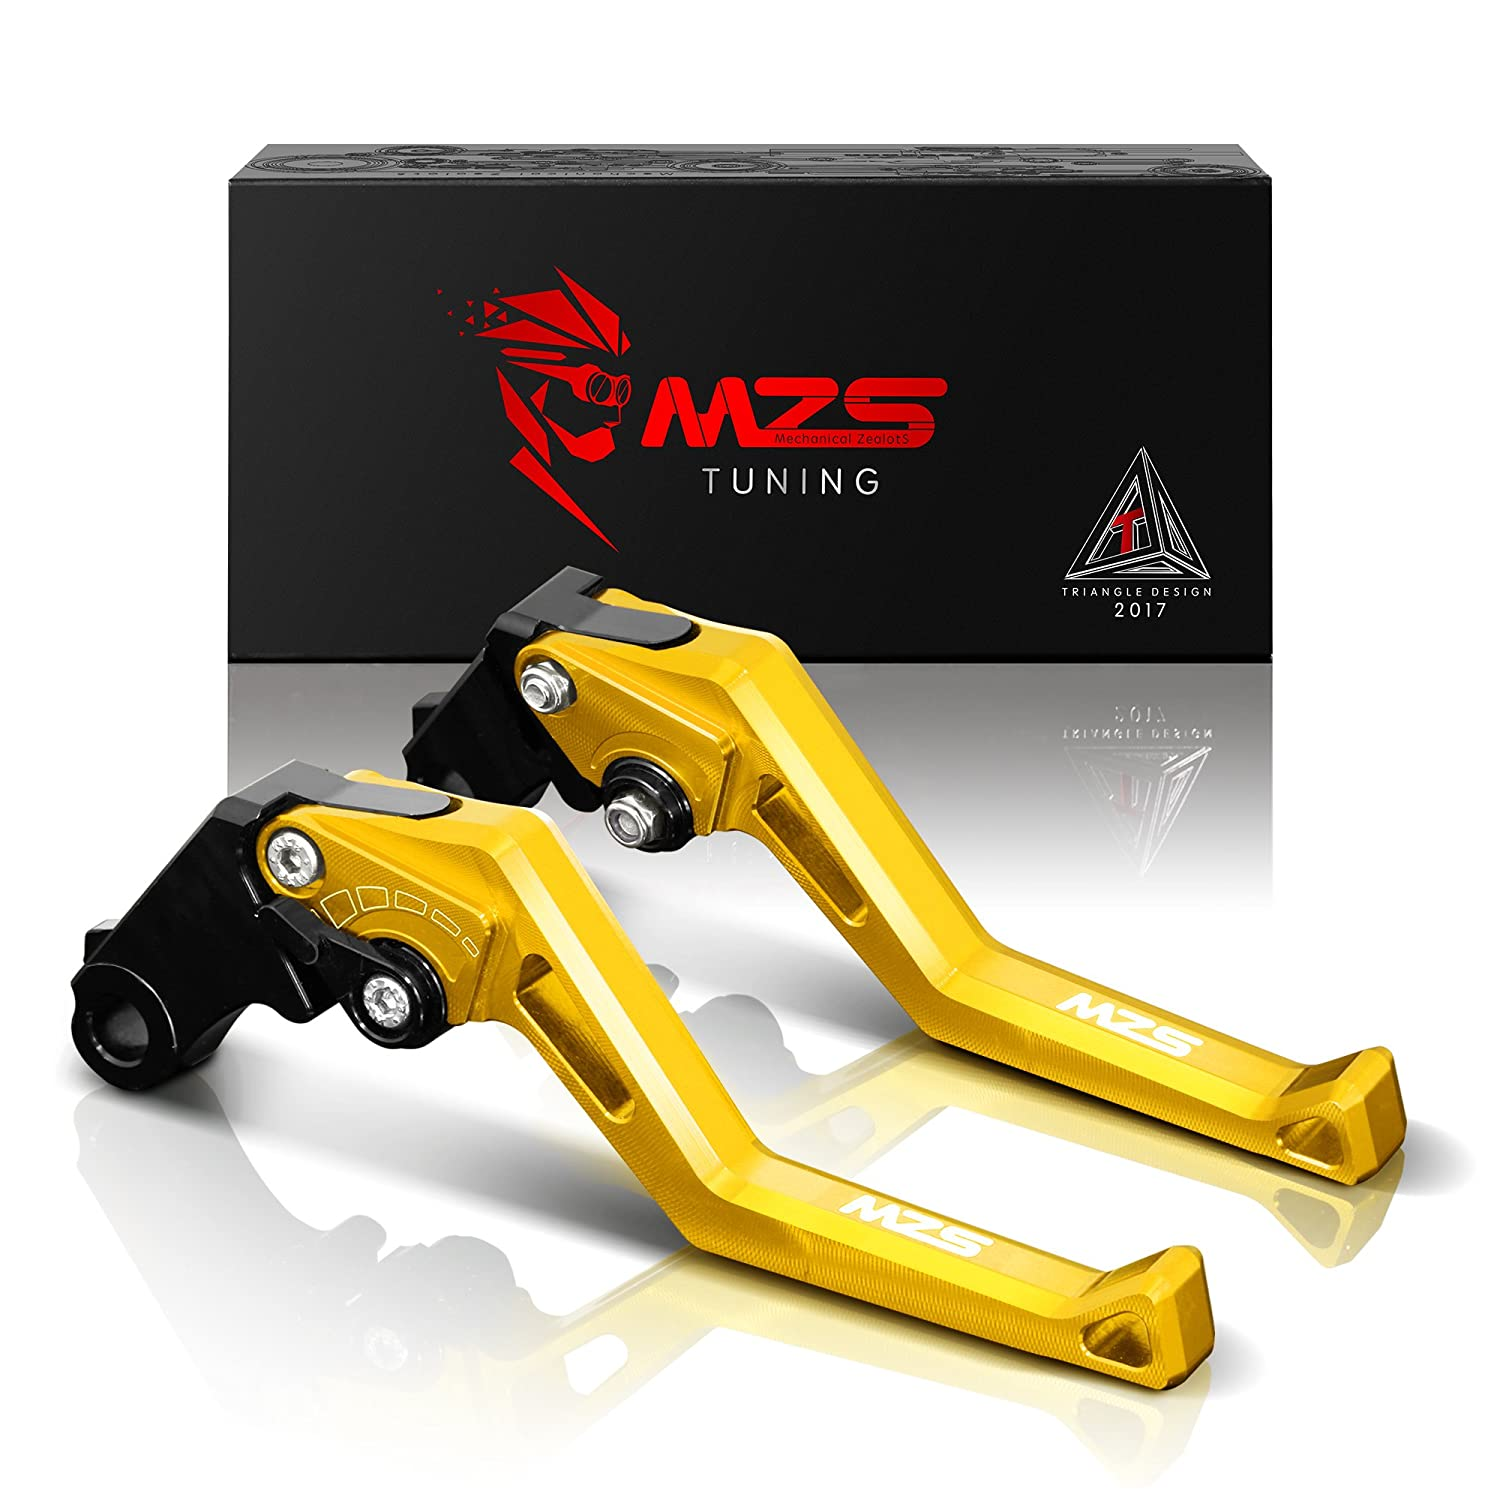 MZS Adjustment Brake Clutch Levers for BMW F800GS/Adventure 2008-2018, F800R 2009-2018, F800GT 2013-2018, F800ST 2006-2015, F800S 2006-2014, F700GS 2013-2017, F650GS 2008-2012 Gold